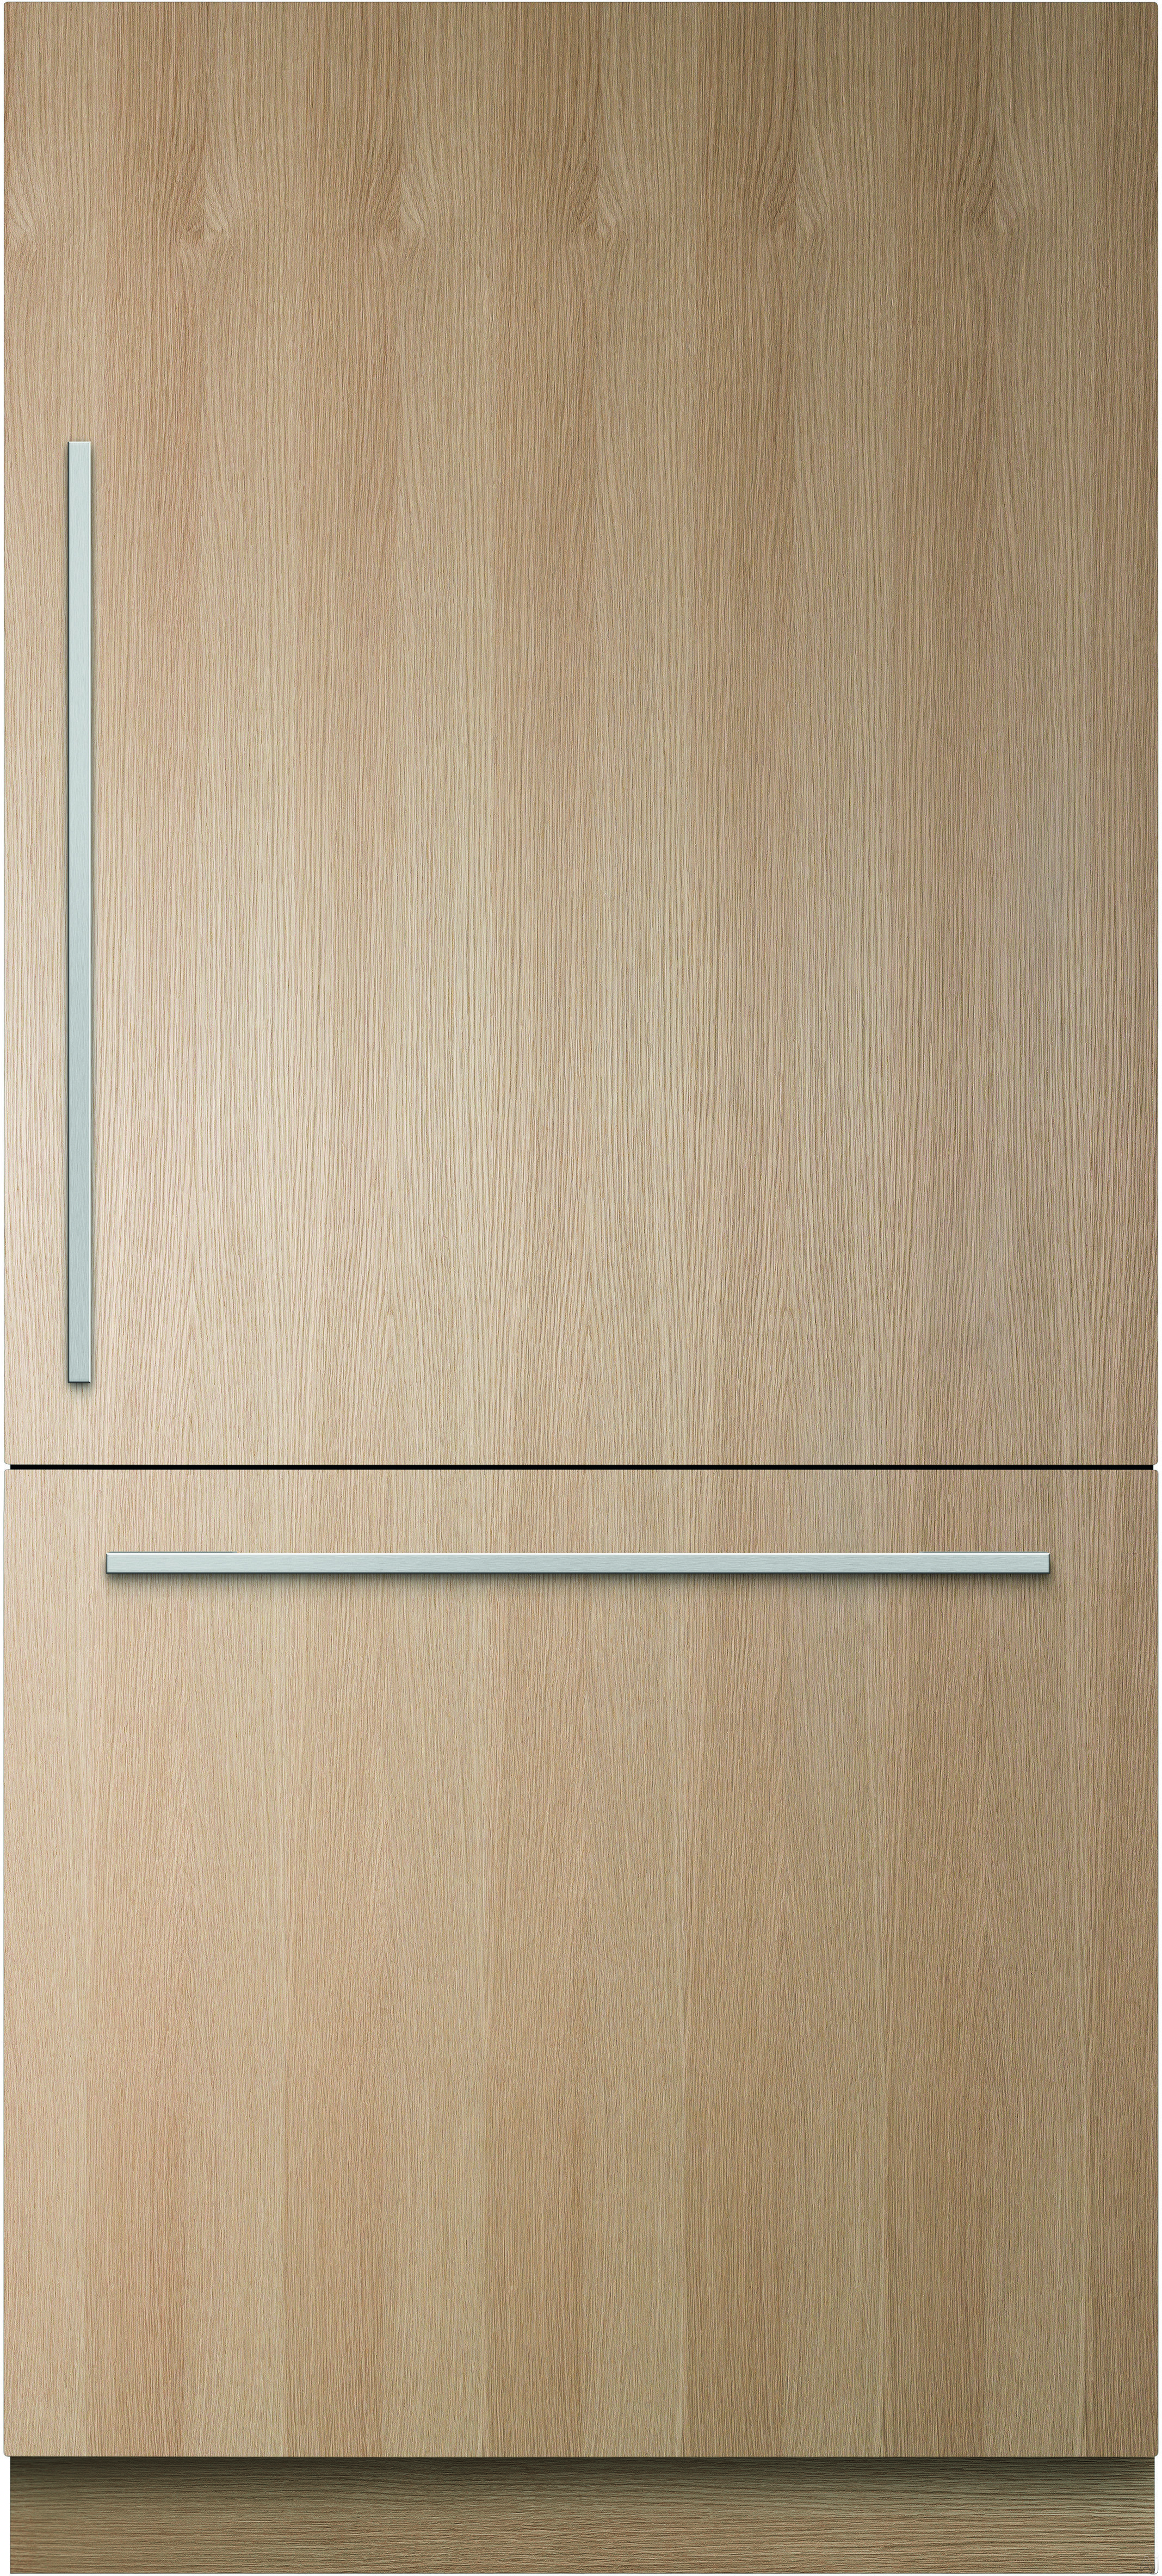 Fisher & Paykel Active Smart RS36W80XJ1 36 Inch Built-In Panel Ready Bottom-Freezer Refrigerator with 16.8 cu. ft. Capacity, Adjustable SpillSafe Shelving, ActiveSmart Technology, Crisper Drawers, 4 Bottle Holders, Deli Bin, Bottle Chill, Fast Freeze, Ice